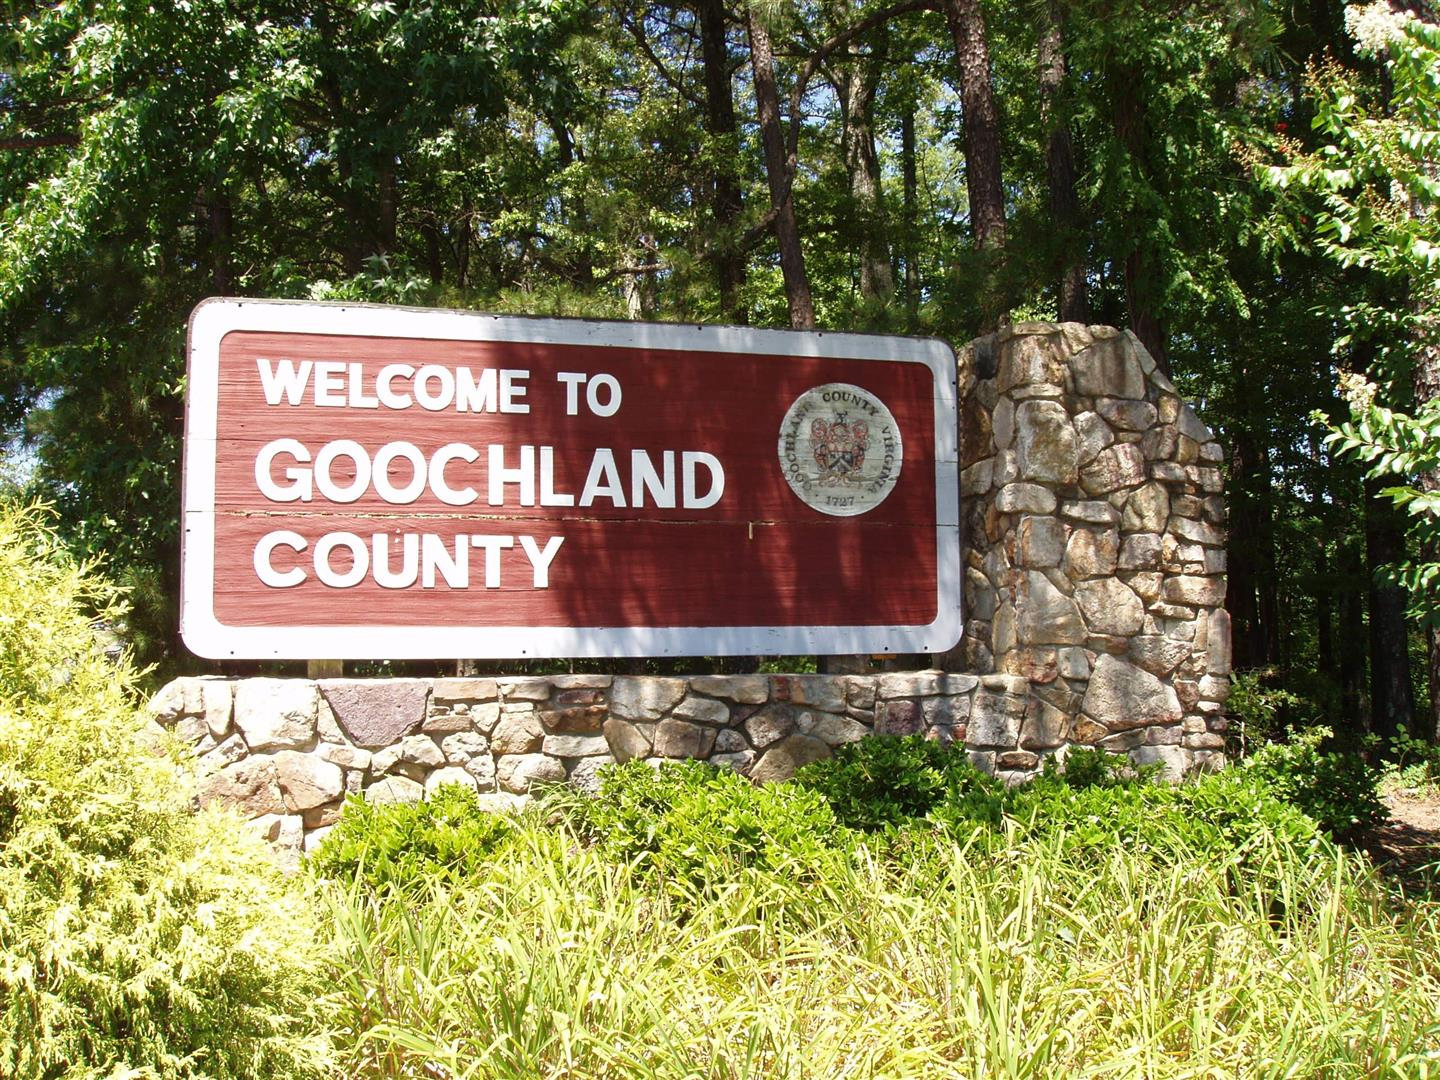 WelcometoGoochland.JPG